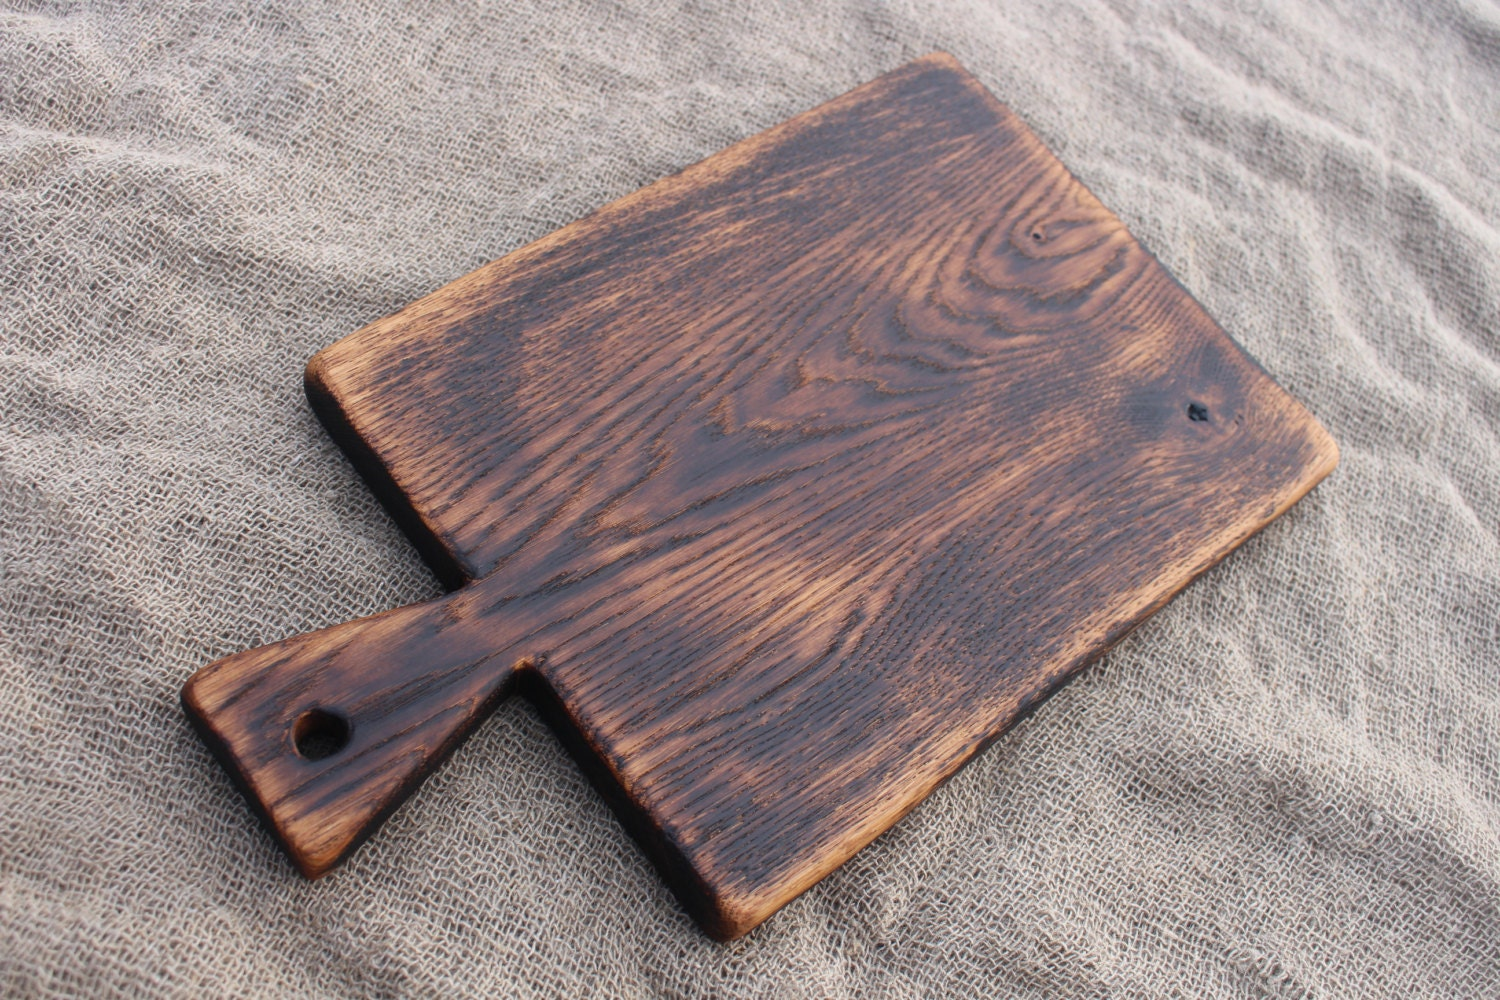 old rustic cutting board wooden serving board vintage wood. Black Bedroom Furniture Sets. Home Design Ideas